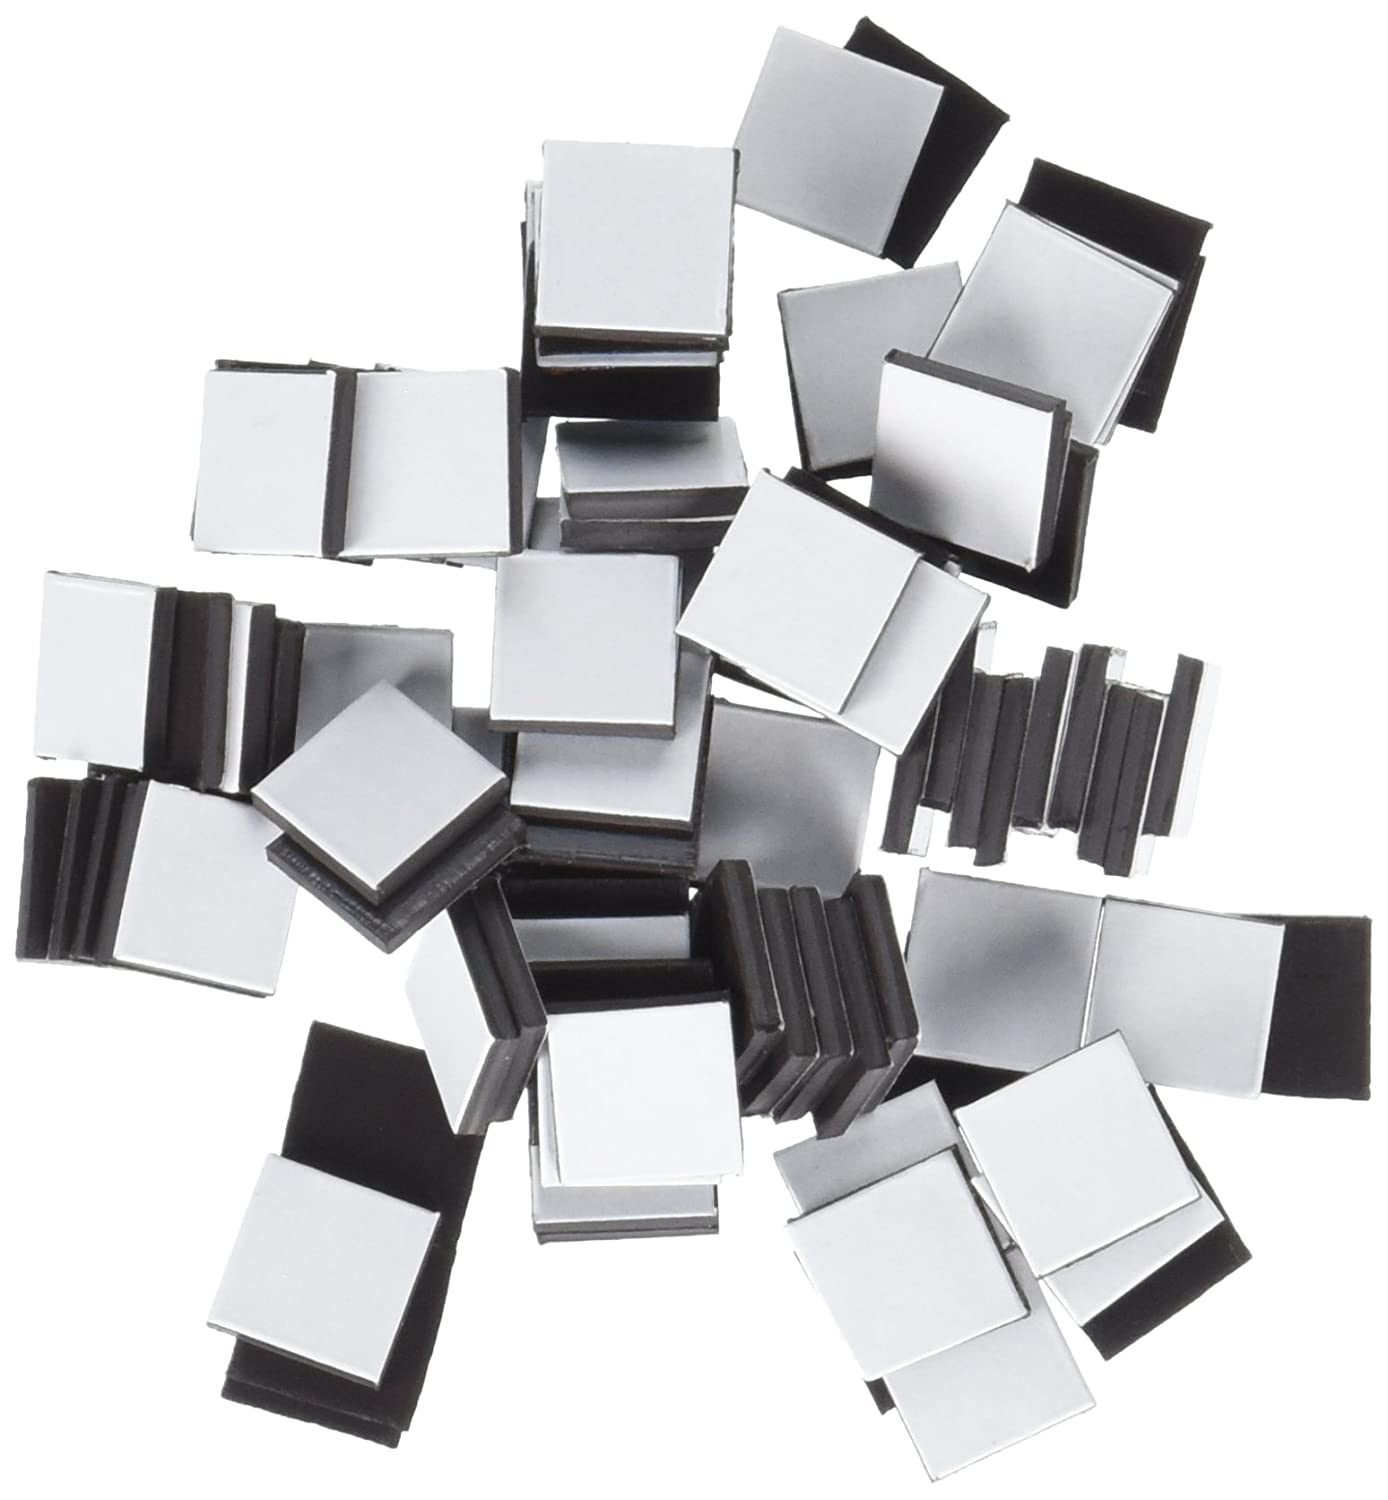 Teacher Created Resources Adhesive Magnetic Squares (20720) TEBG3